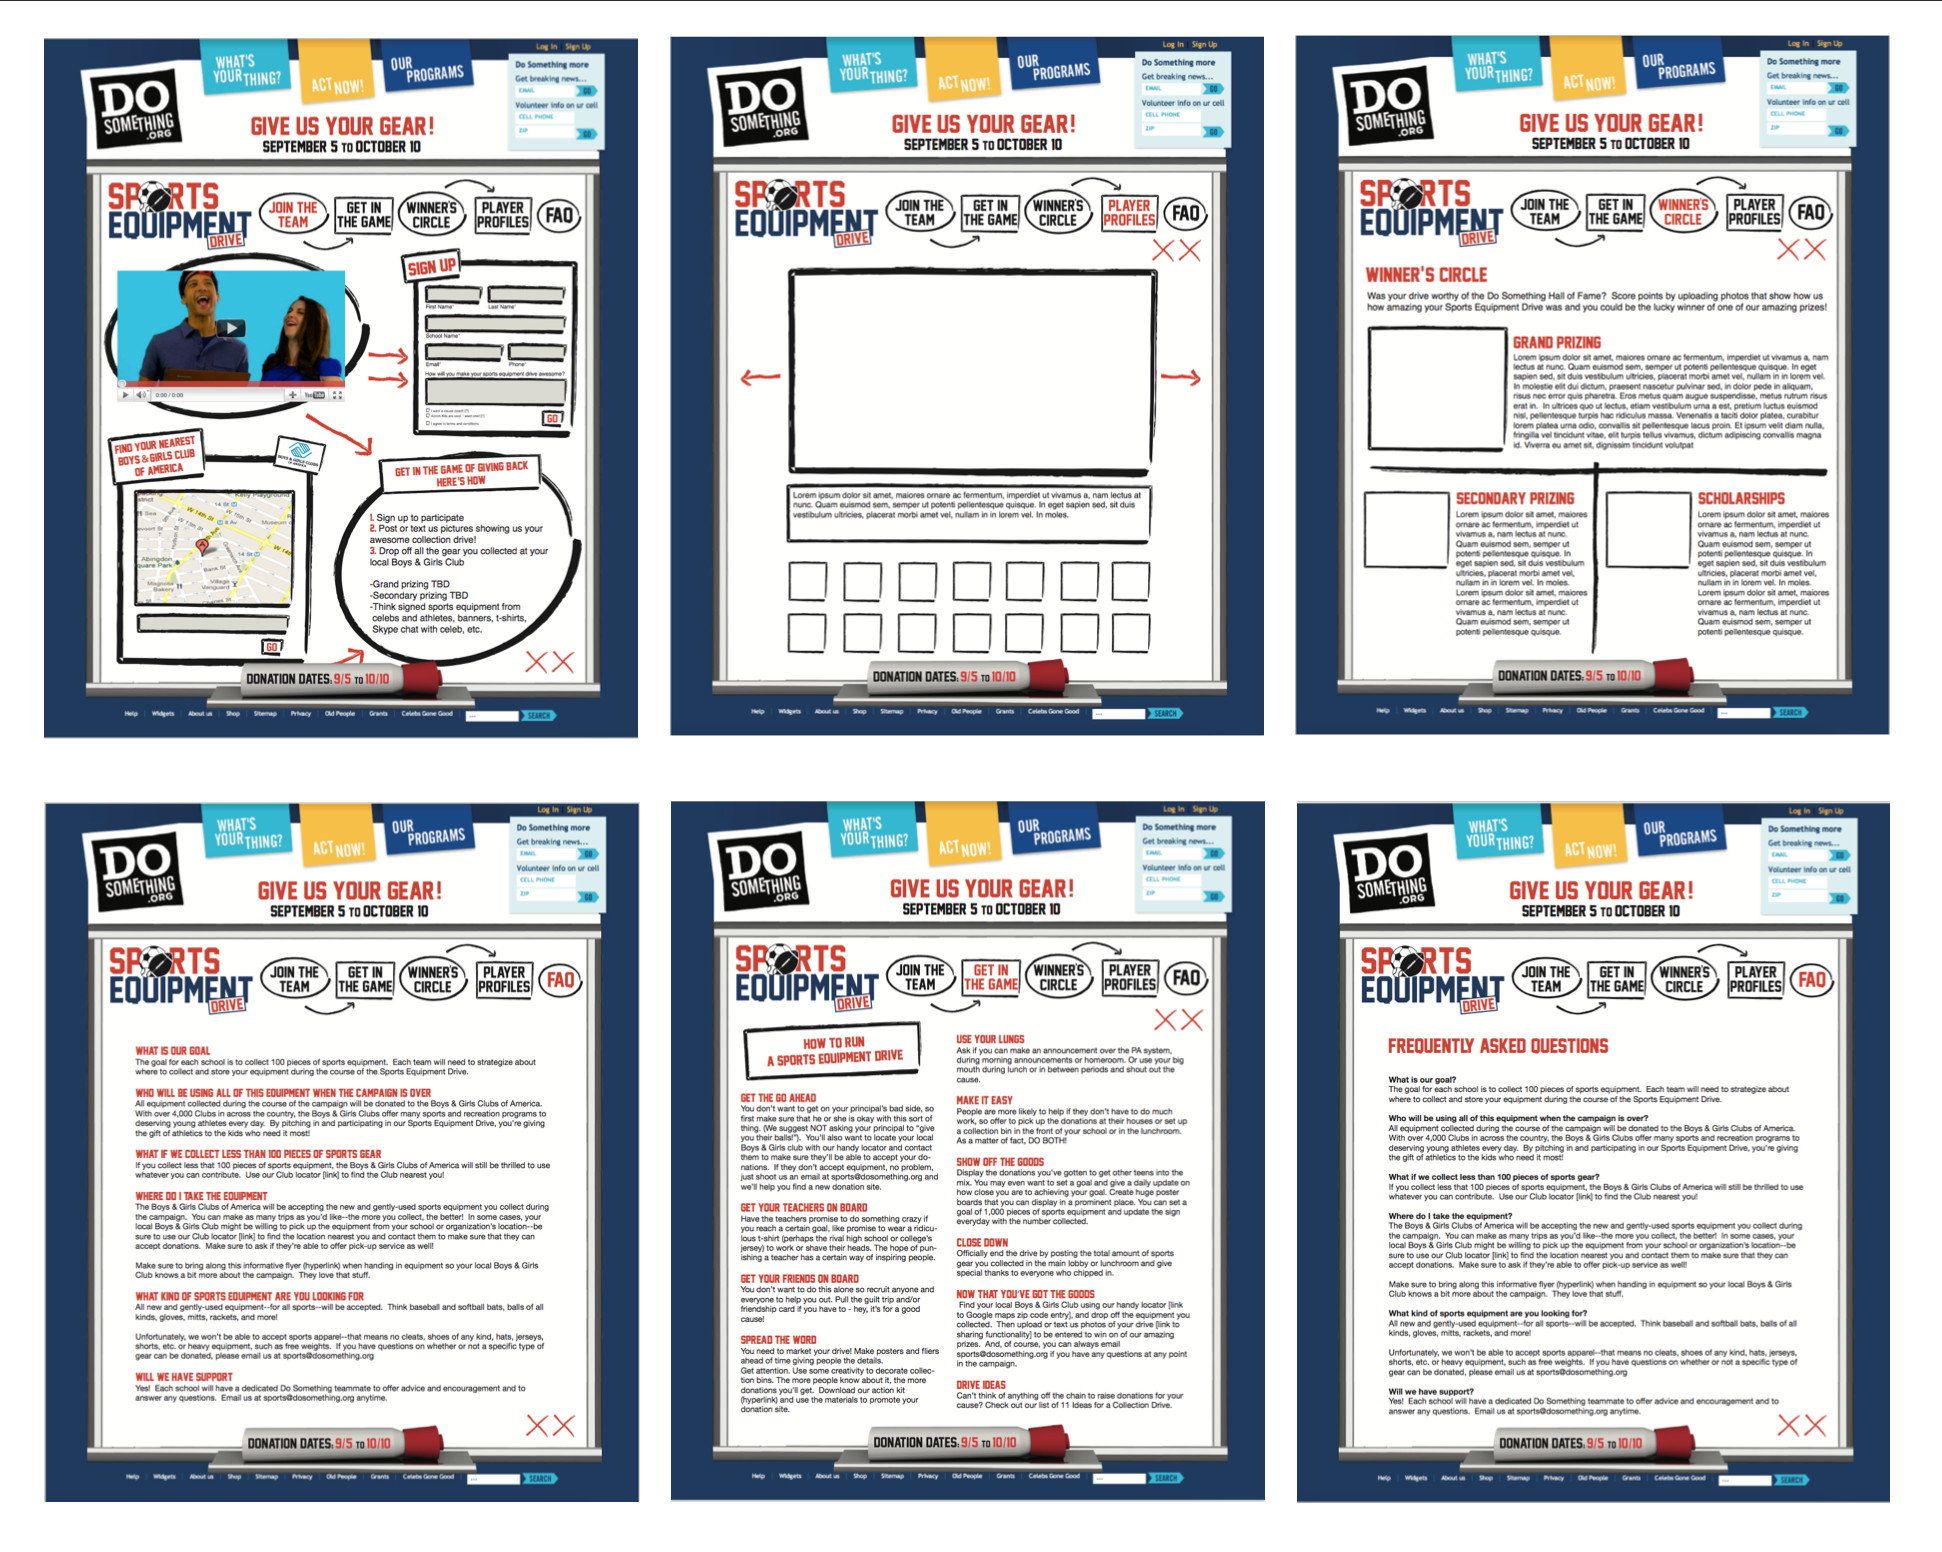 """Web layout and logo design for the """"Sports Equipment Drive"""" campaign."""